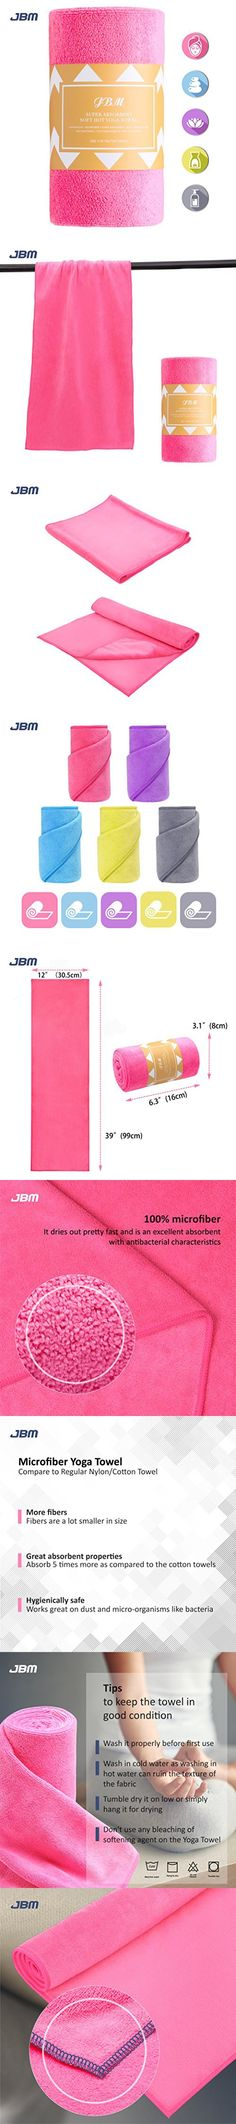 13 x 39 Microfiber Non-Slip Yoga Gym Weightlifting Mat Gym Bench Towels 3 Pack